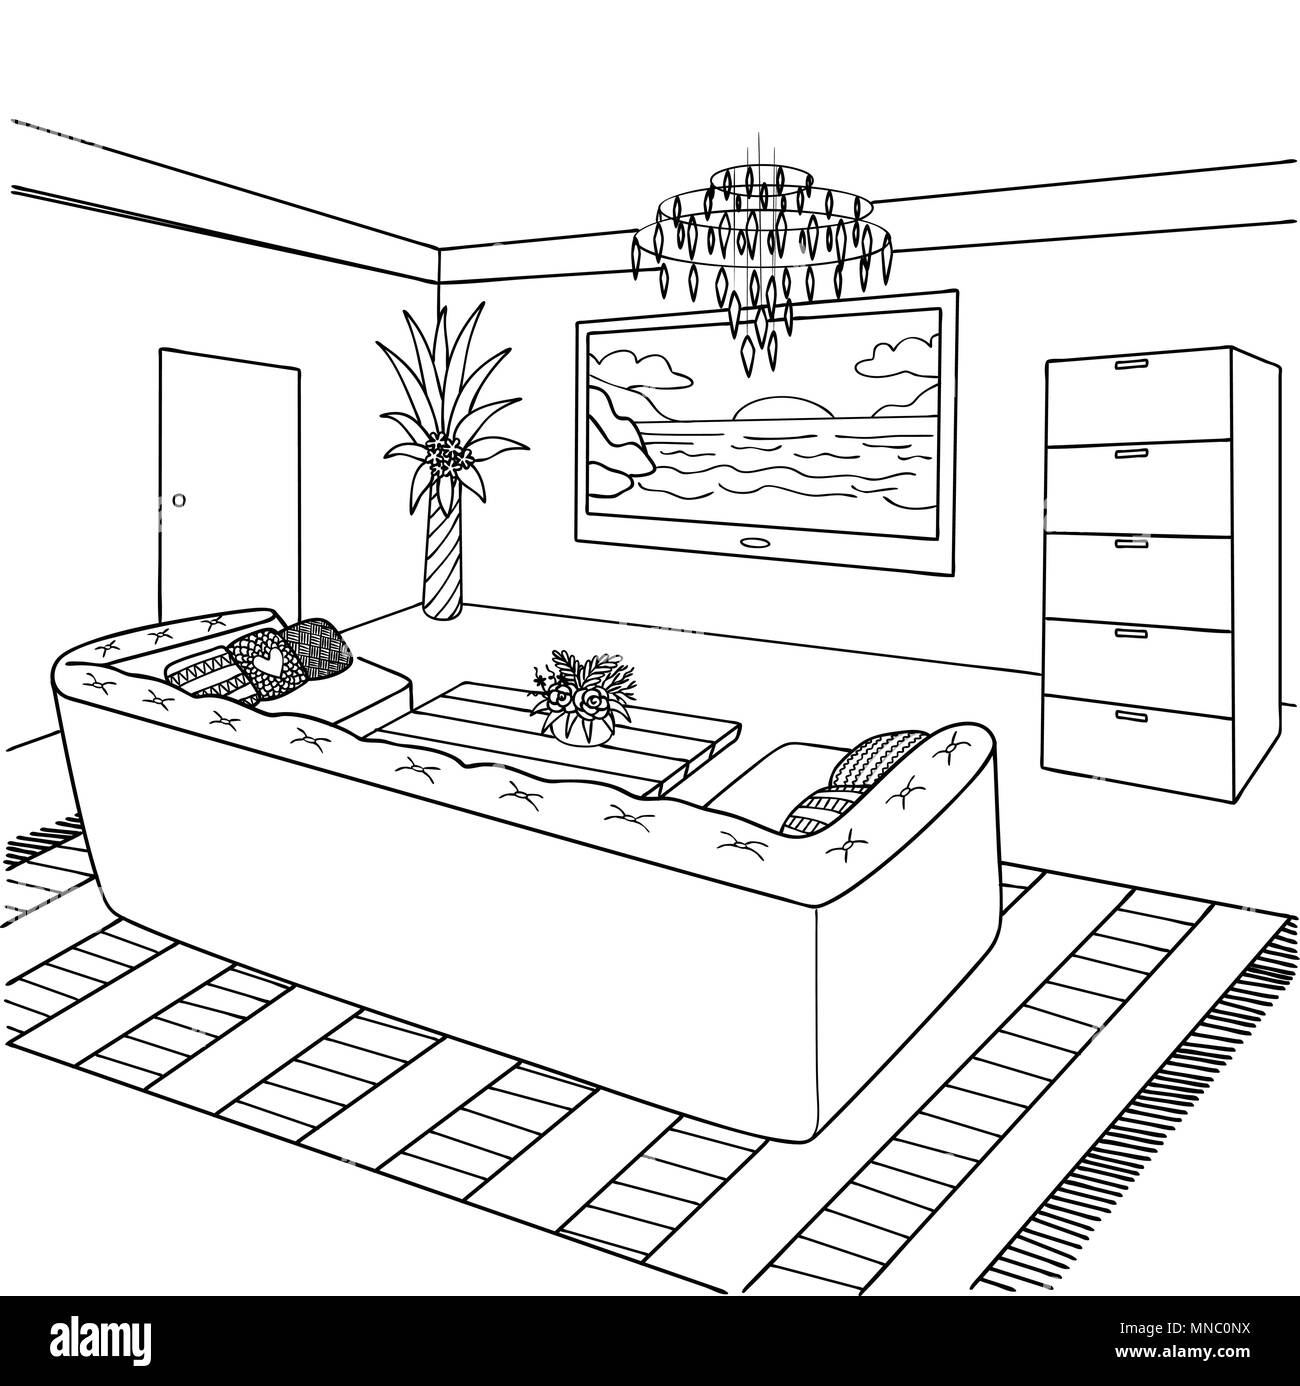 Coloring Book Page For Adult And Kids Stock Photos